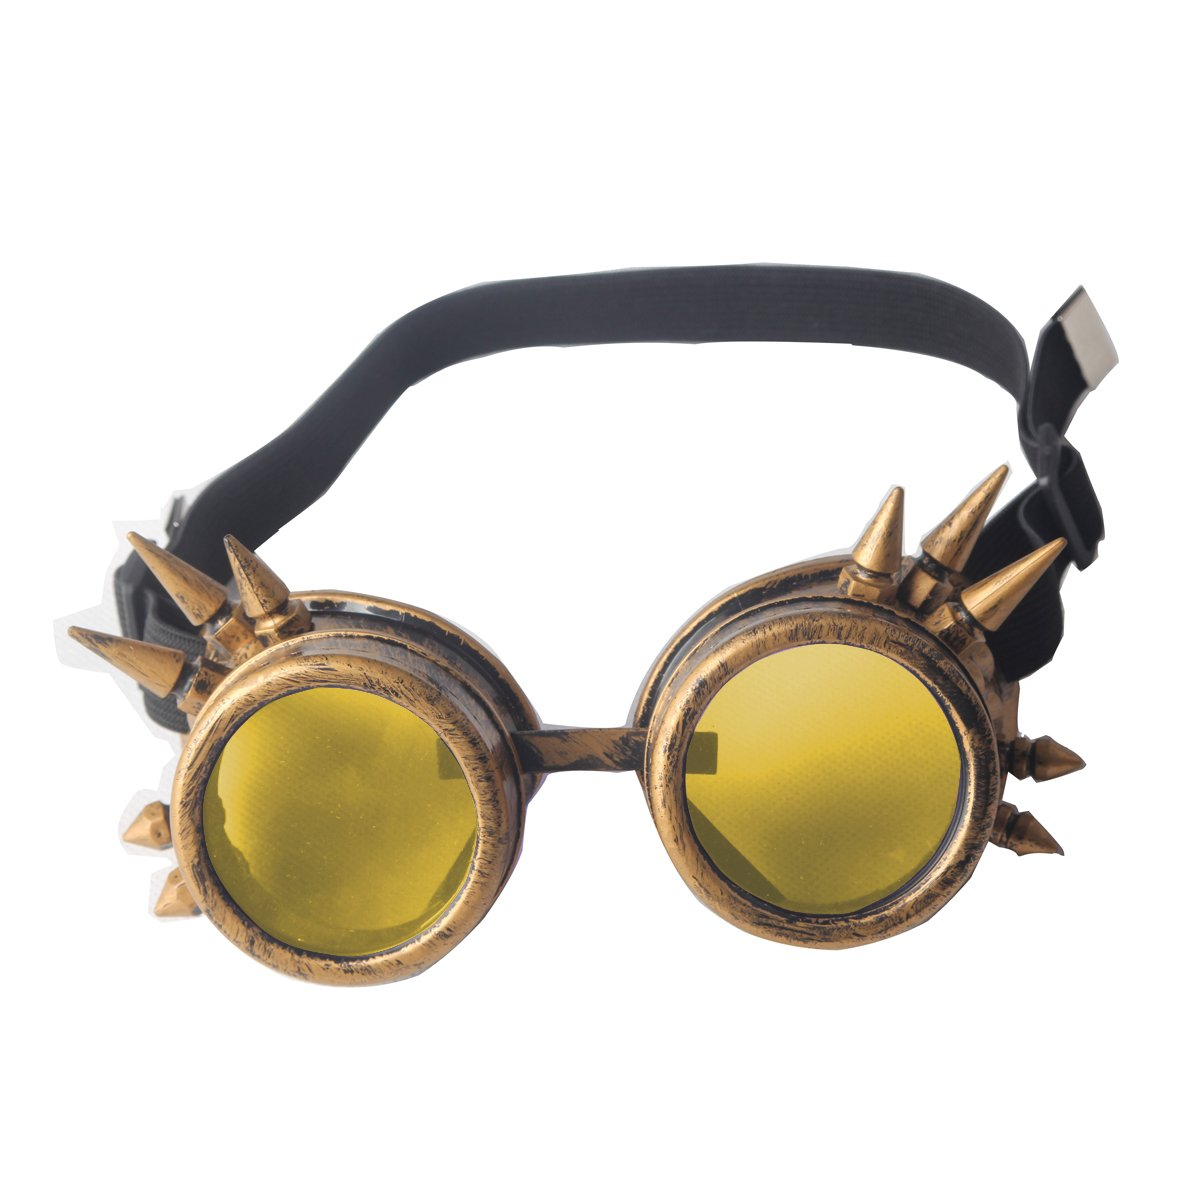 Halloween Cosplay Goggles, Spiked Retro Glasses Free Lens Steampunk Goggles G003-B-2+G004-BL-7*2